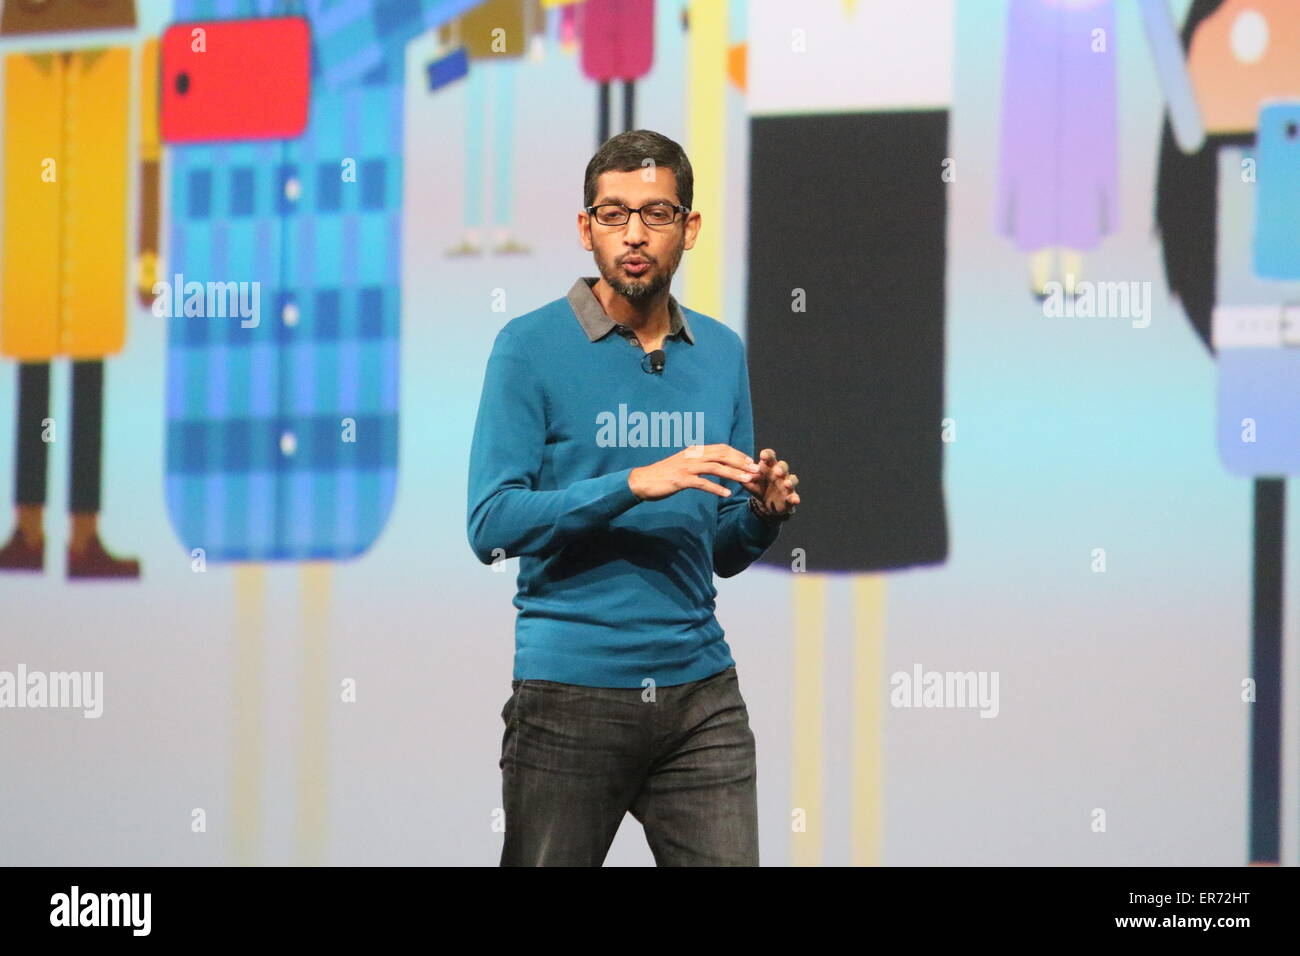 Google Product Manager Sundar Pichai Delivers A Speech At. Technical Architect Resume. Resume Sample For It. Sample Resume With Objectives. Sample Of Social Worker Resume. Pmp Resume Sample. Java Developer Fresher Resume. How To Do A Proper Resume. How To Make A Business Resume